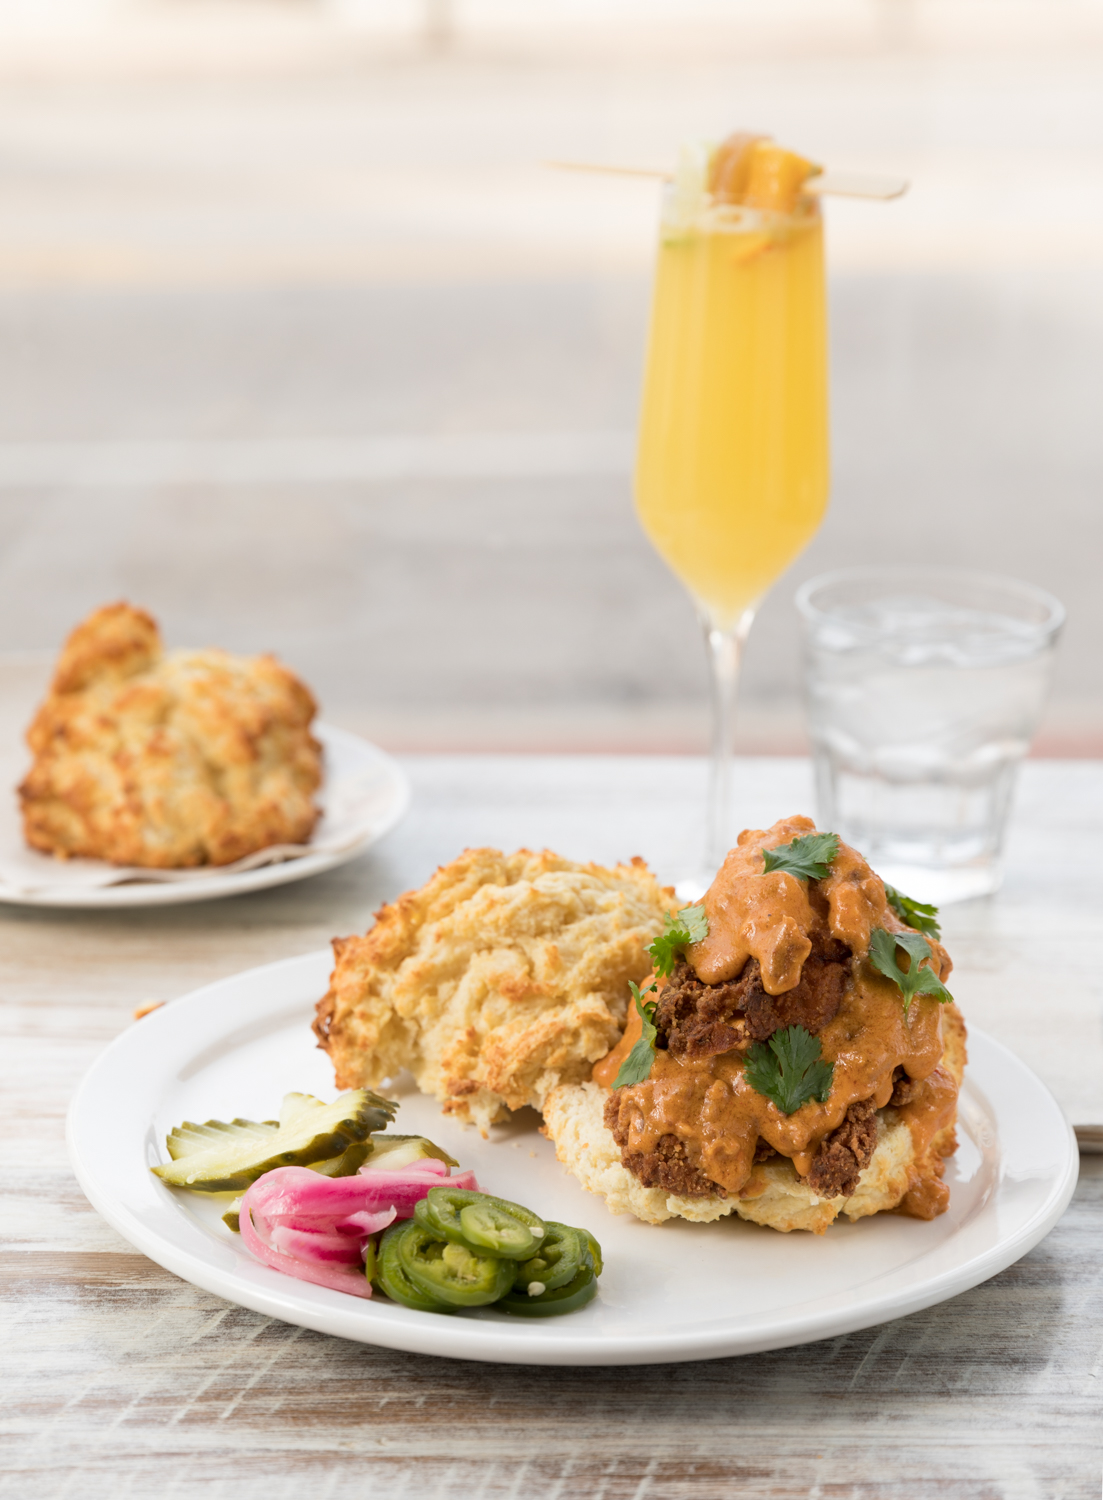 Fried Chicken in a Biscuit: fried chicken, buttermilk biscuit, with spicy chorizo gravy{ }/ Image: Marlene Rounds // Published: 1.6.19